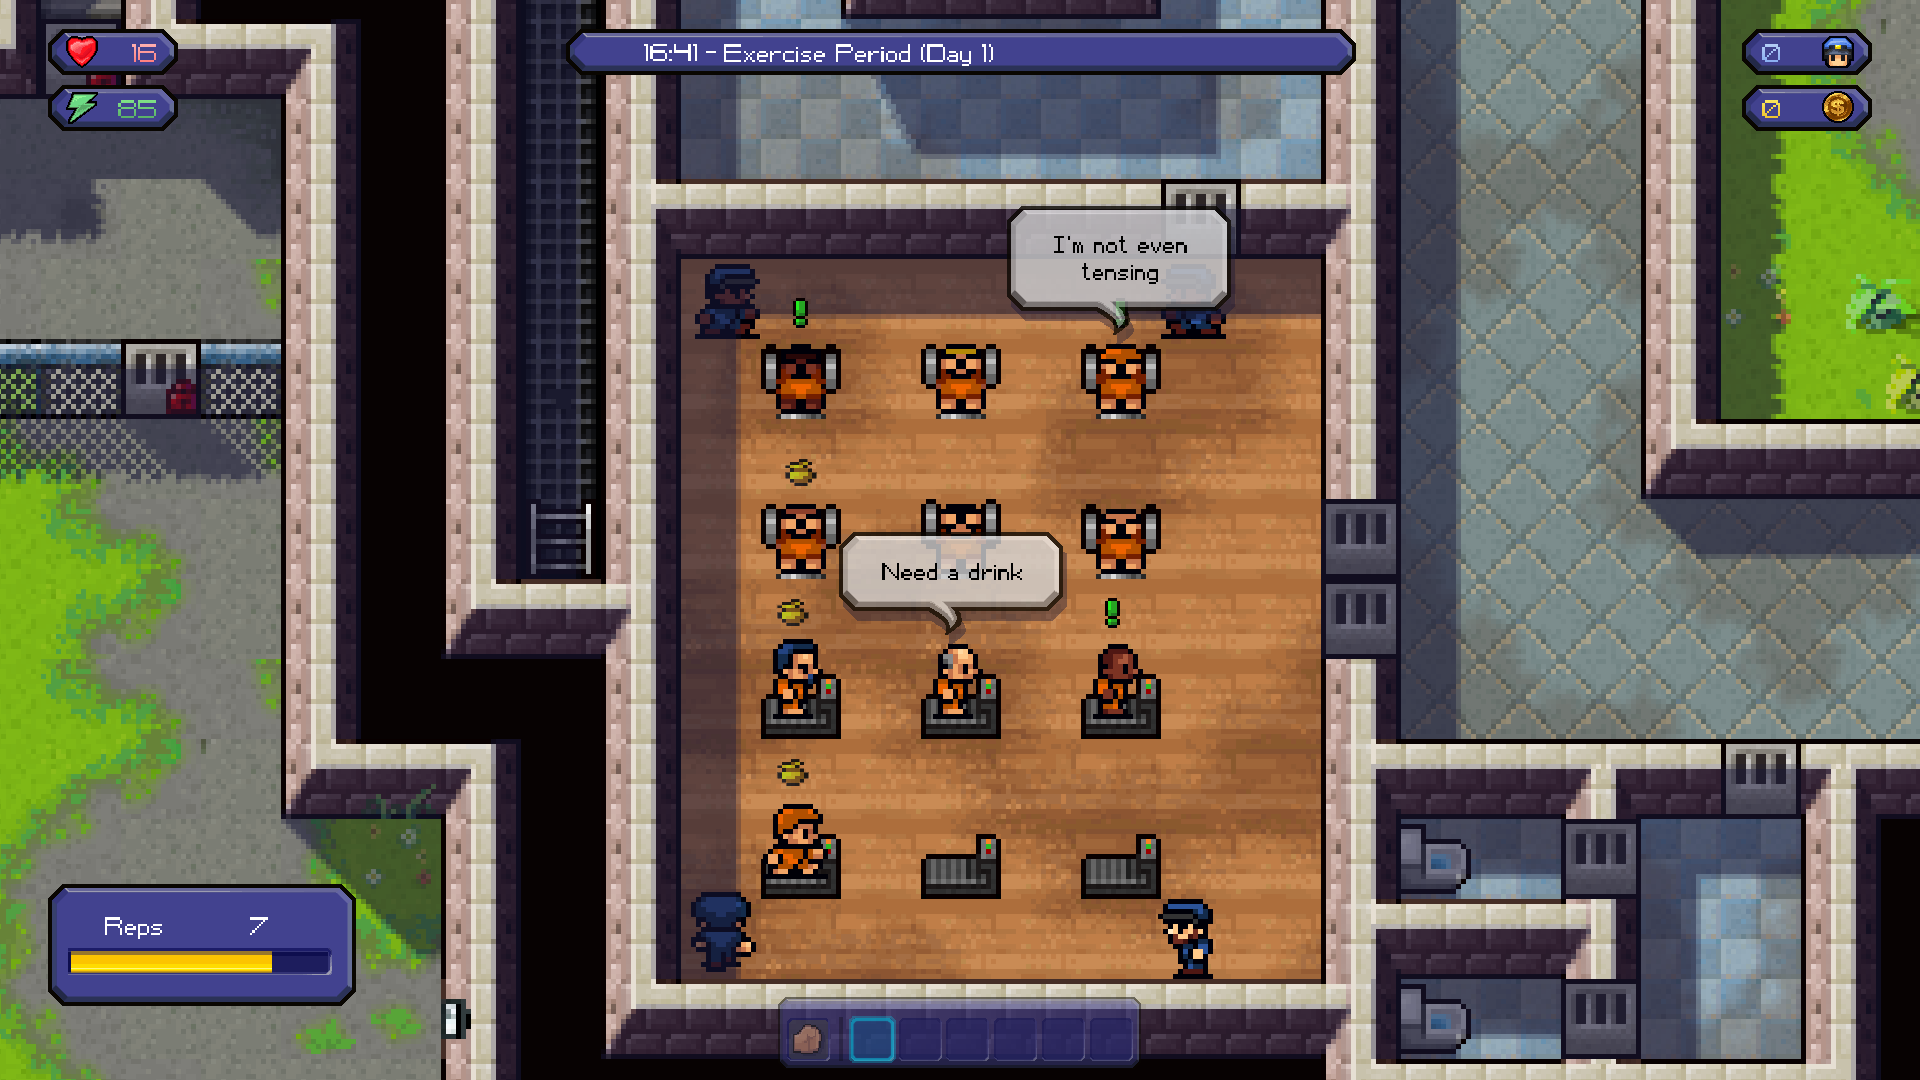 Win a free Steam key for The Escapists - over 300 to give away! - VG247